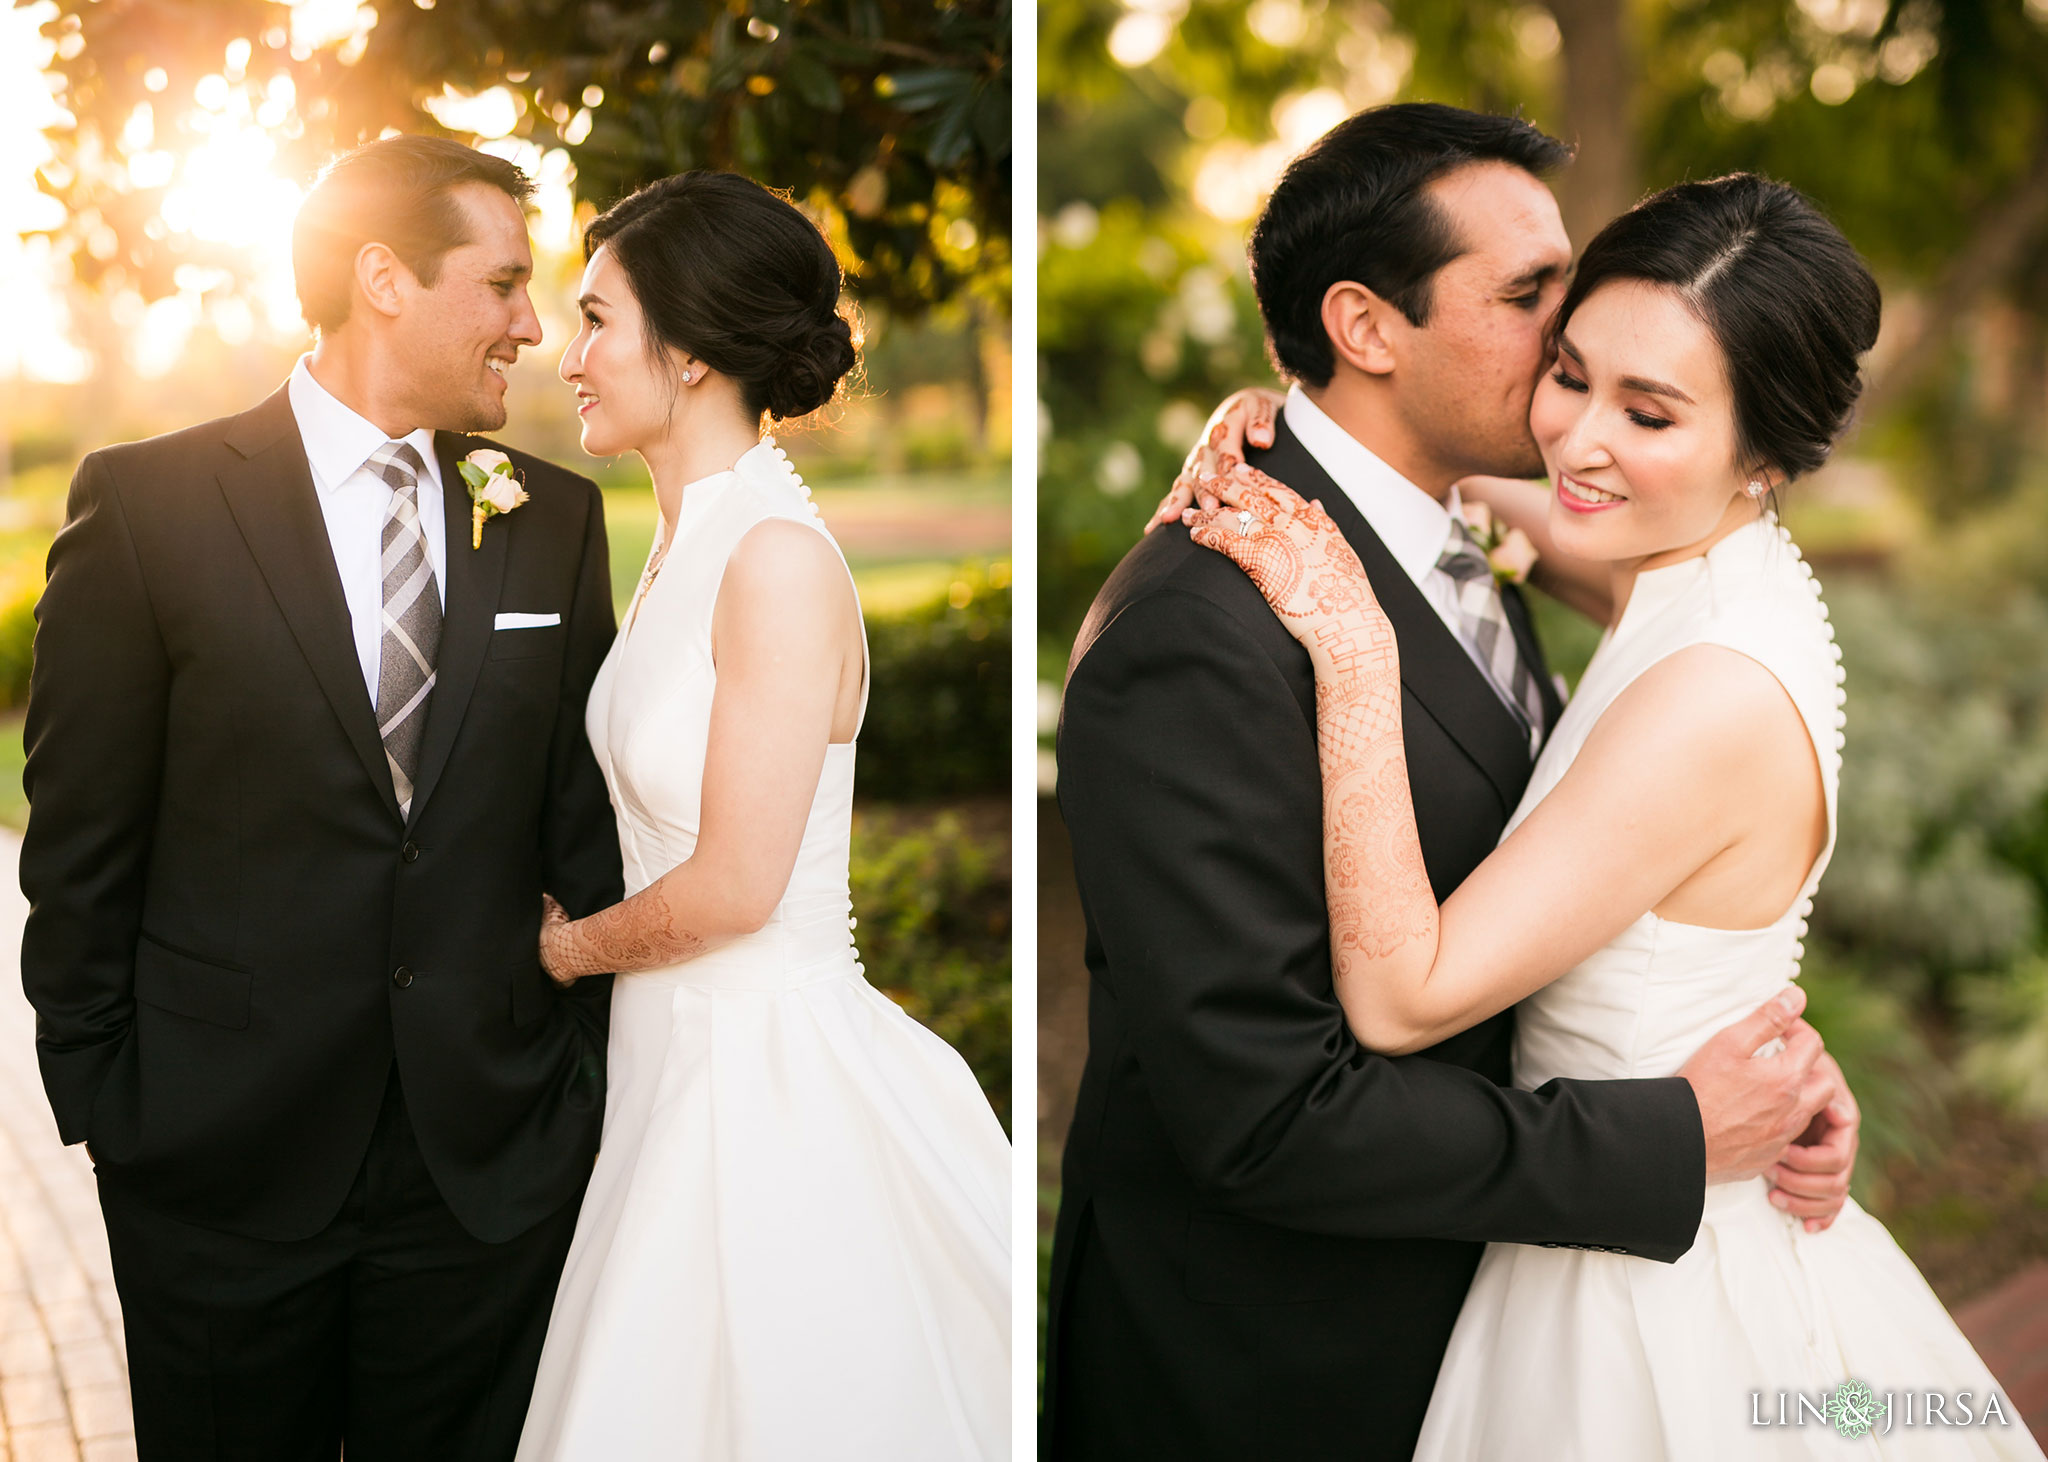 34 four seasons westlake village indian wedding photography